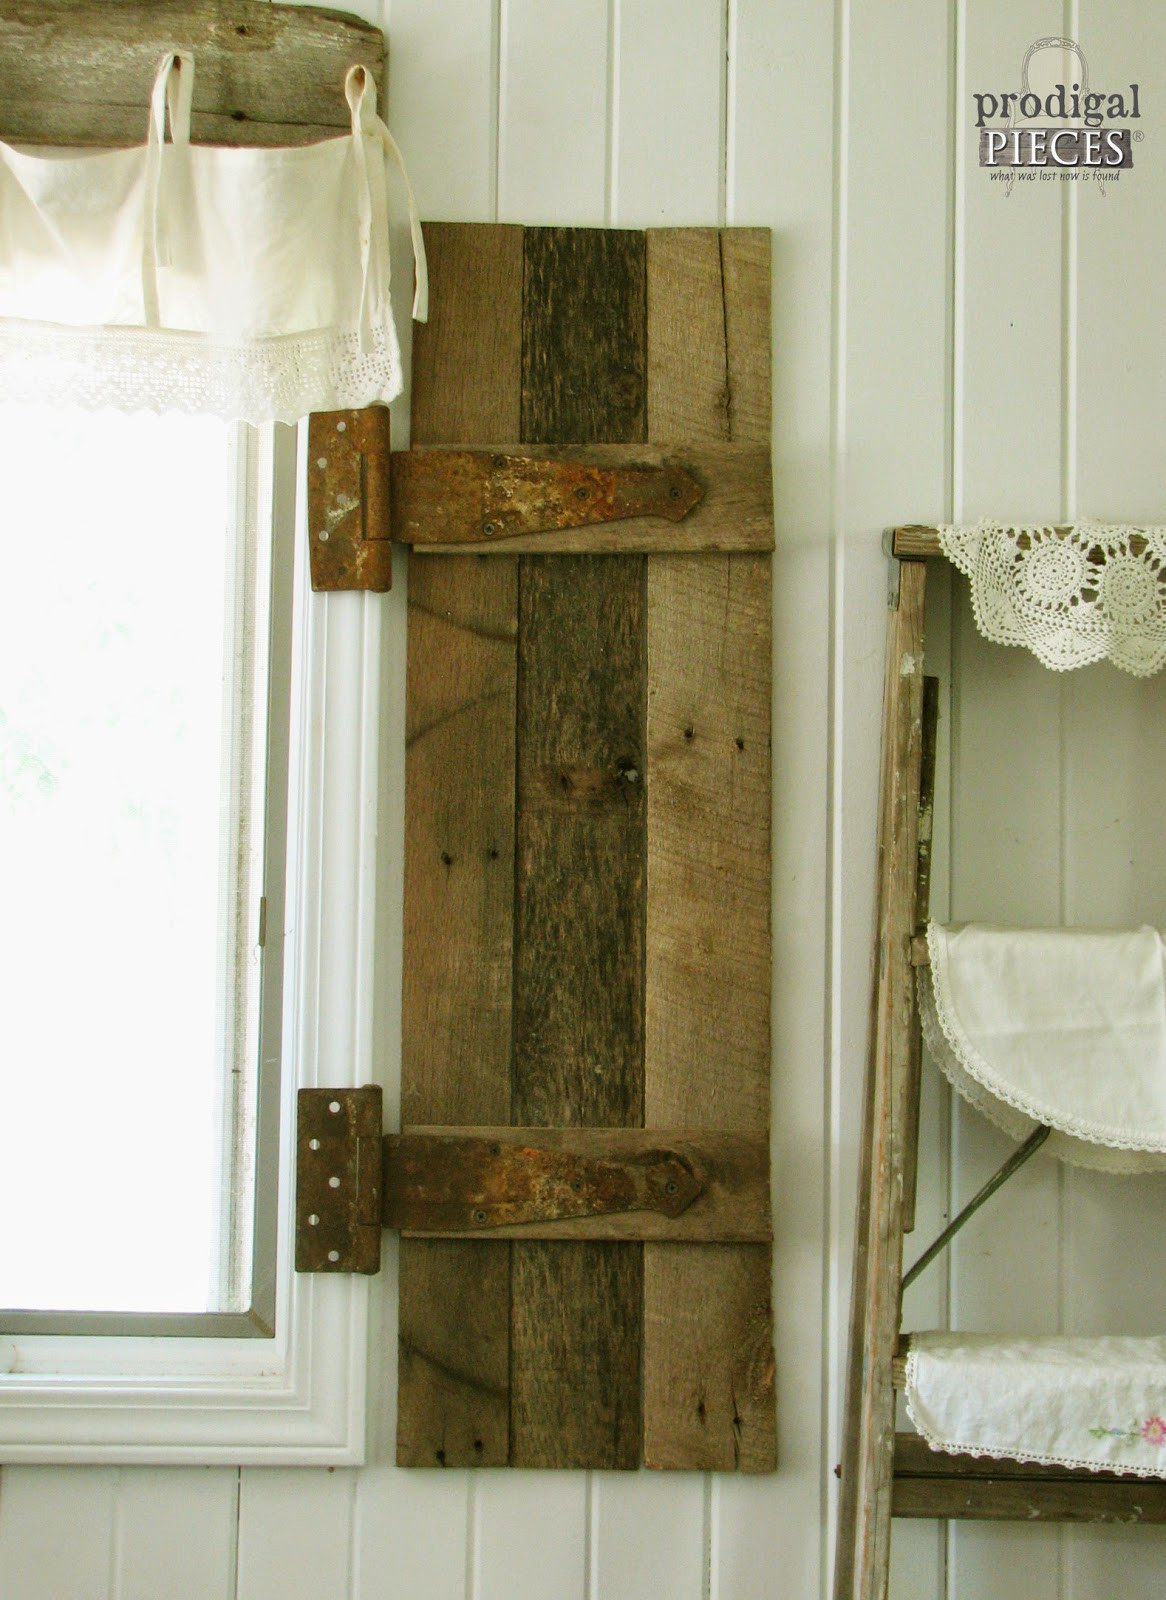 Best ideas about DIY Wood Shutters . Save or Pin DIY Barn Wood Shutters from Pallets Prodigal Pieces Now.